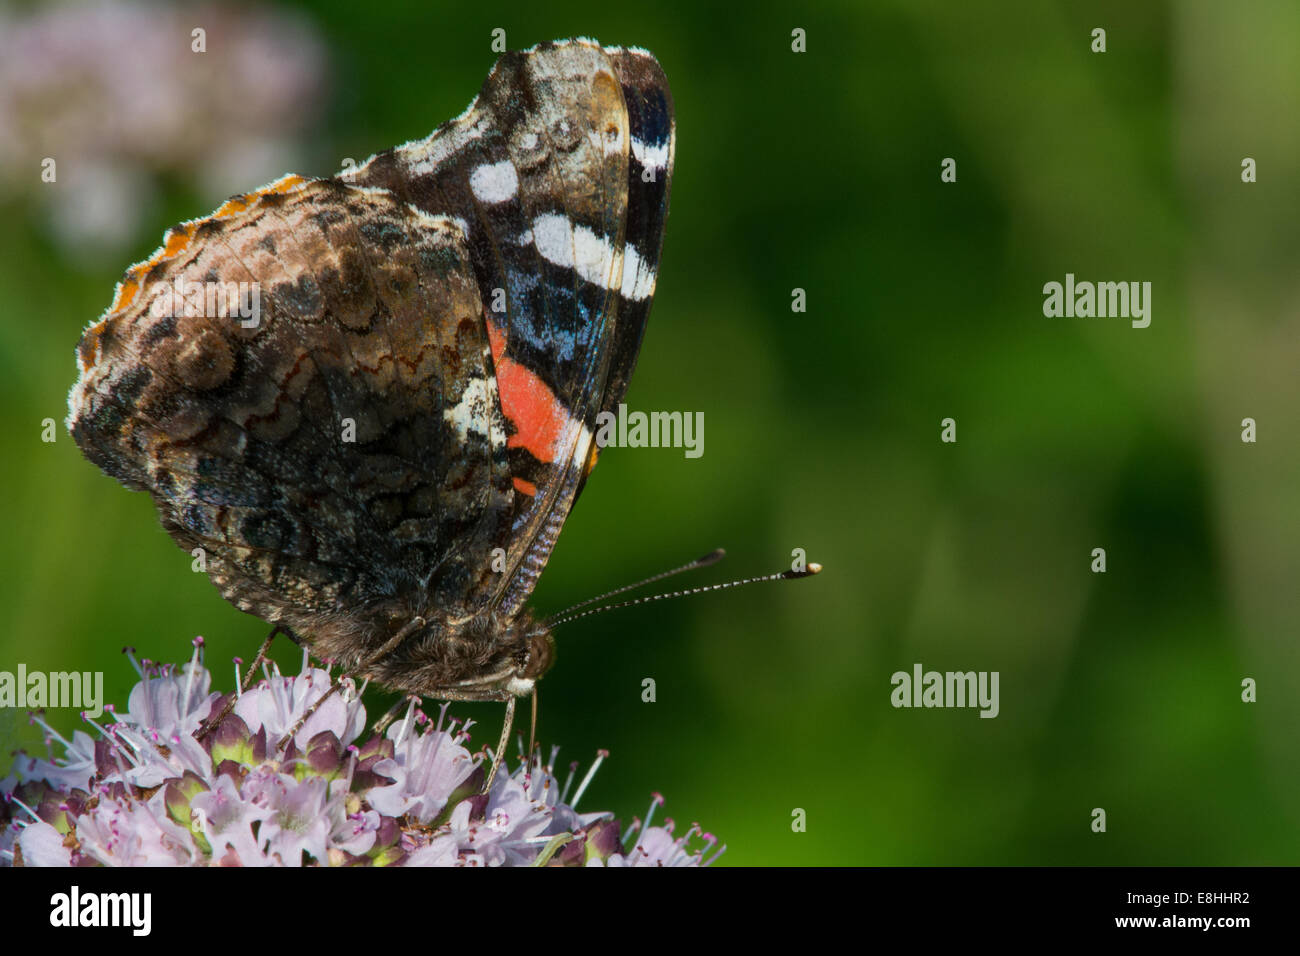 Red Admiral feeding on nectar. - Stock Image